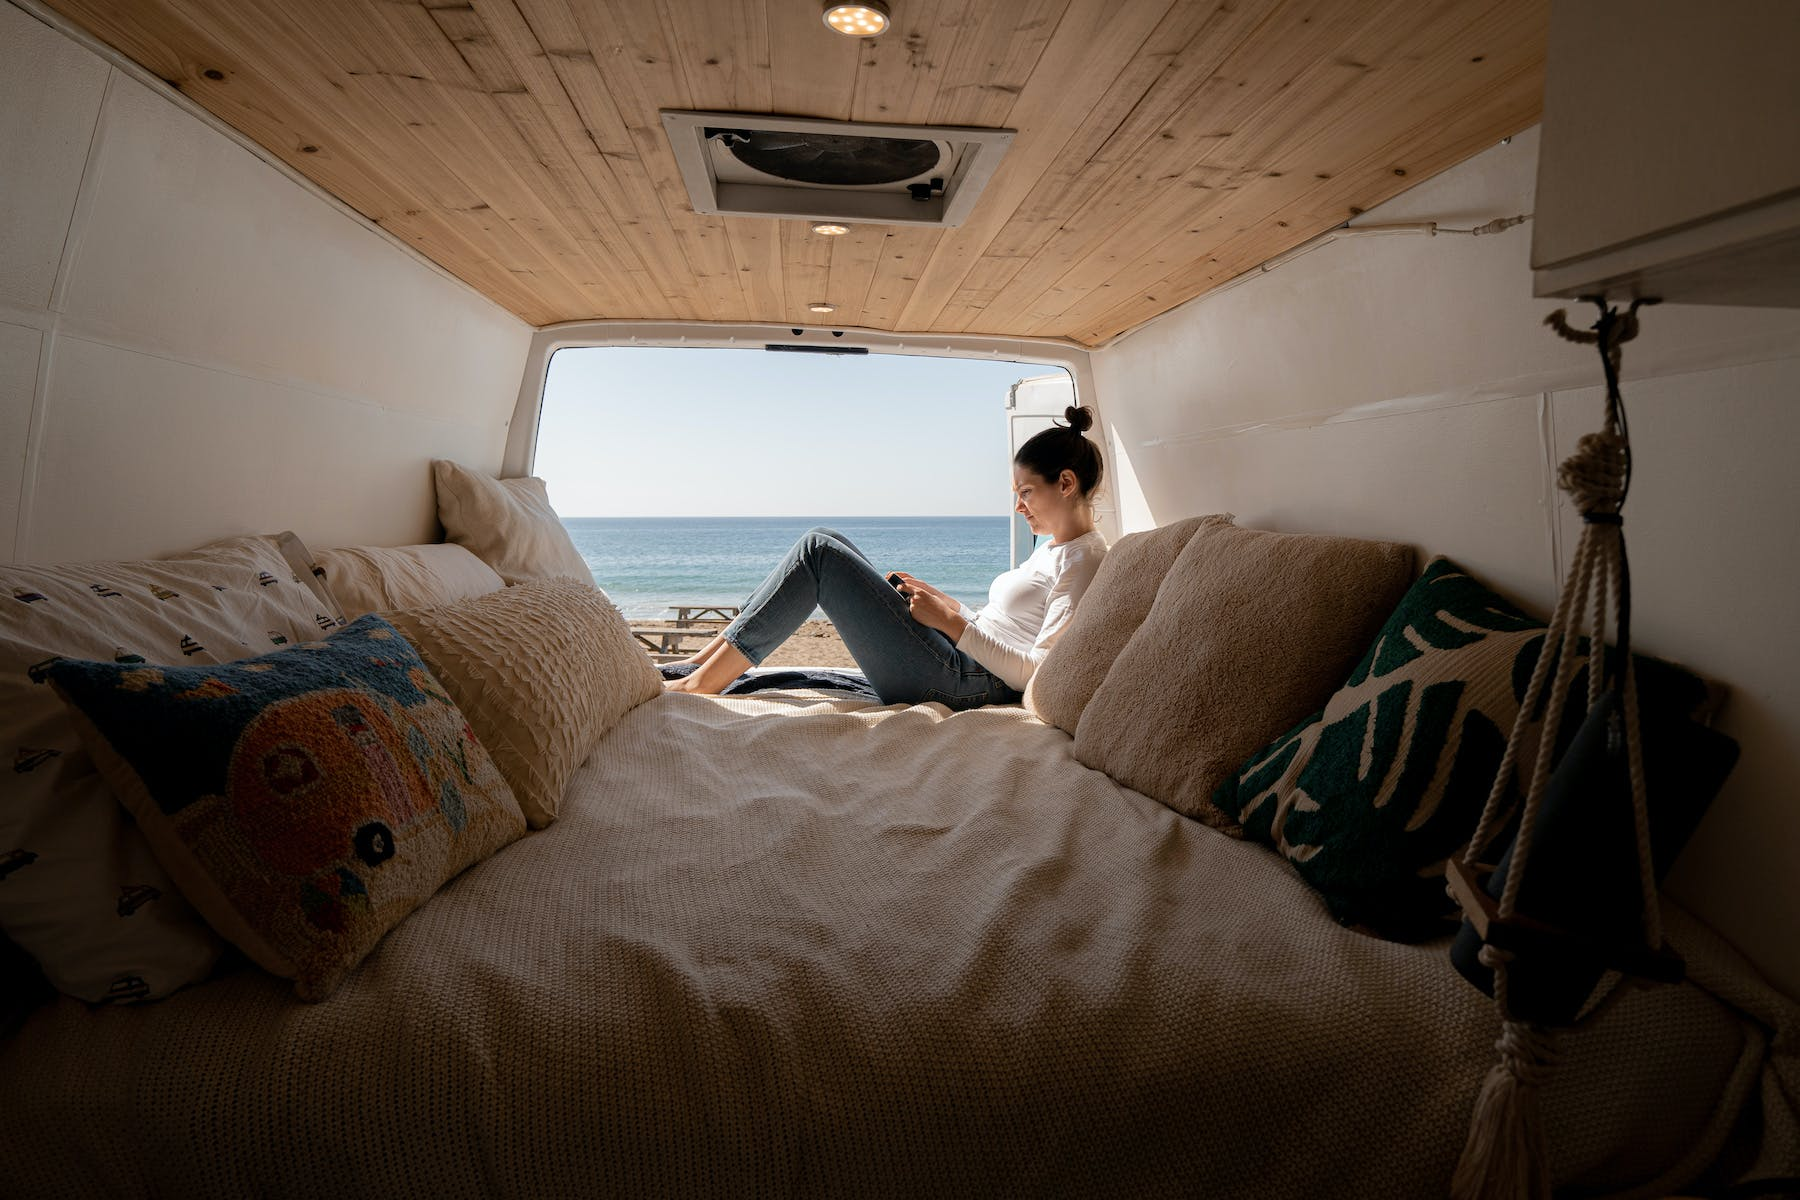 Men's Journal: 6 Ways to Test Out Living the Vanlife Before Committing to It